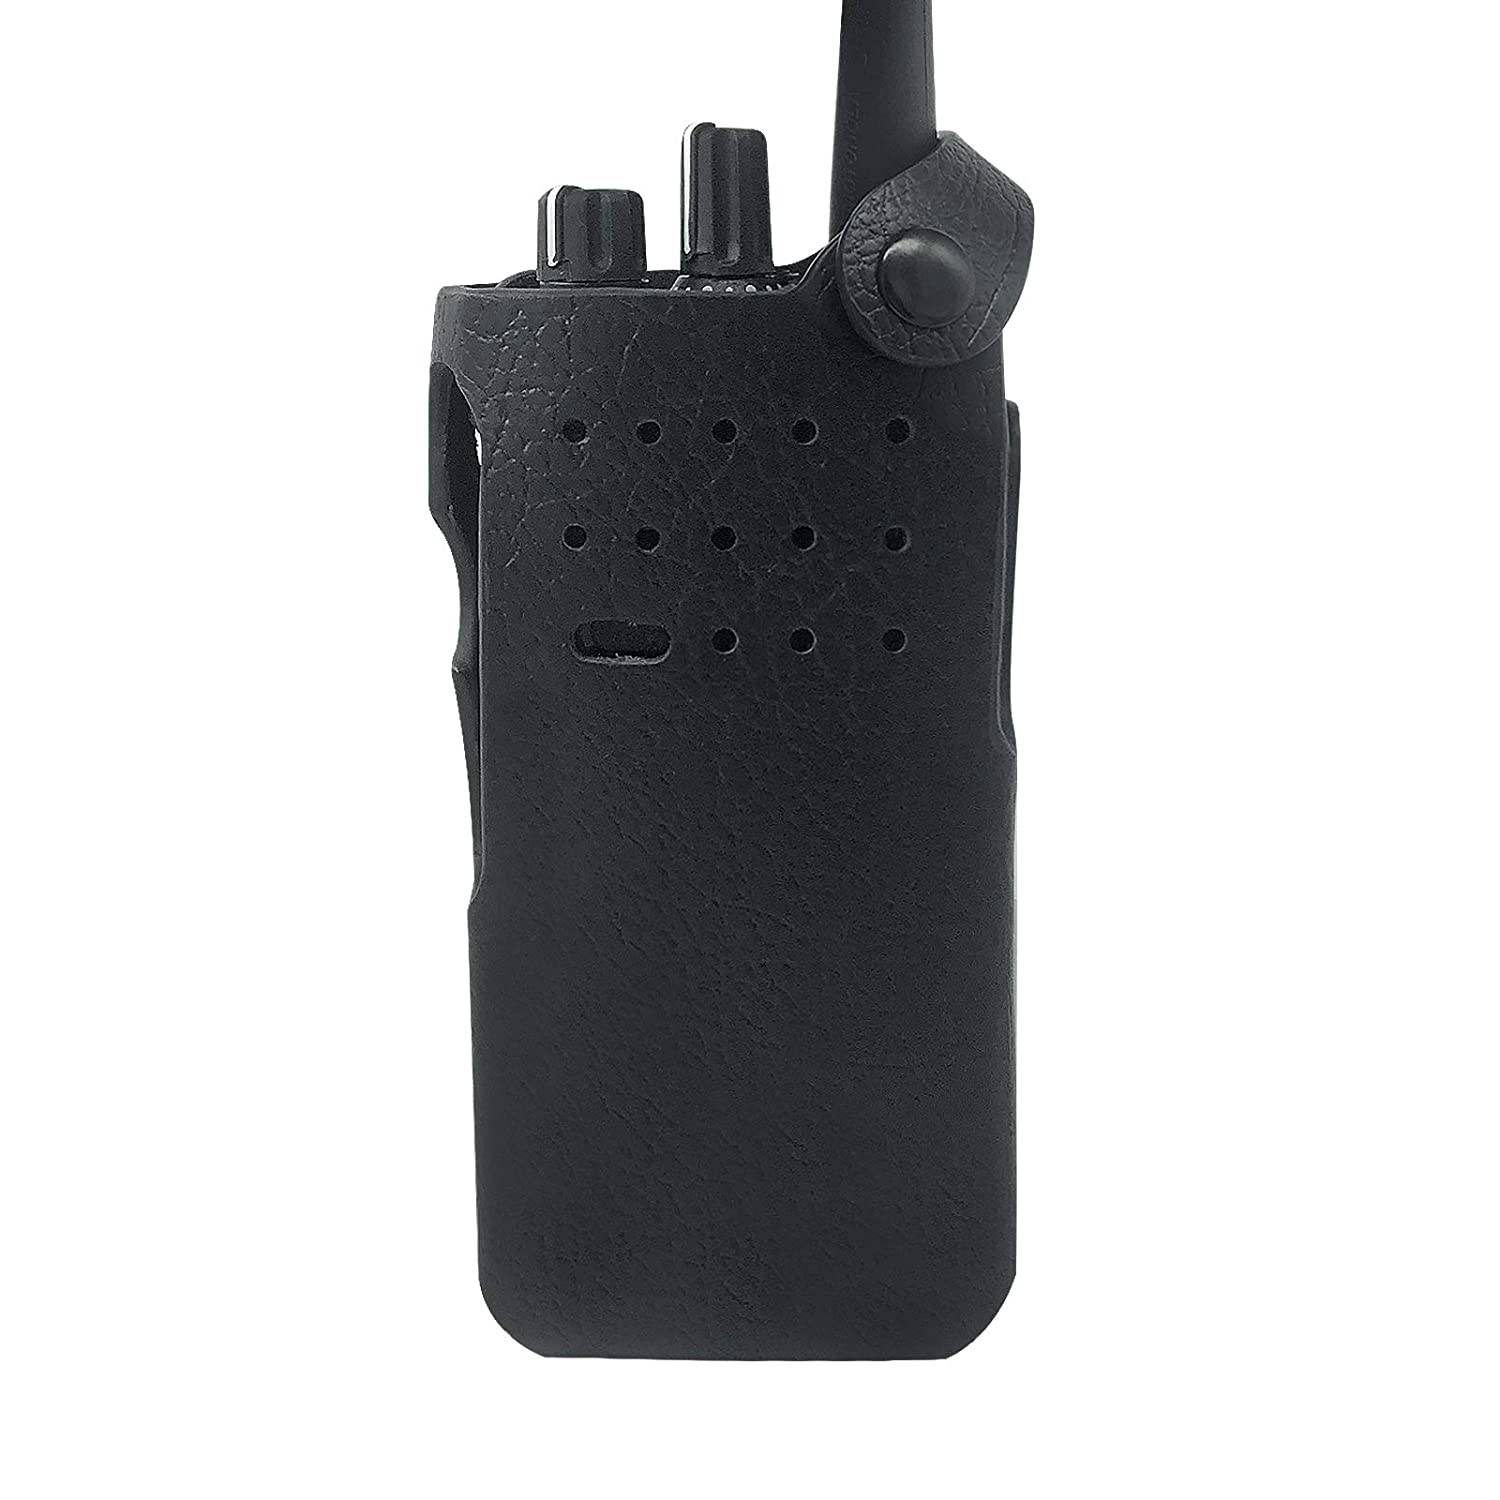 Amasu PMLN5839 Hard Leather Carry Case for Motorola XPR 7000 XPR7000e Series Radio